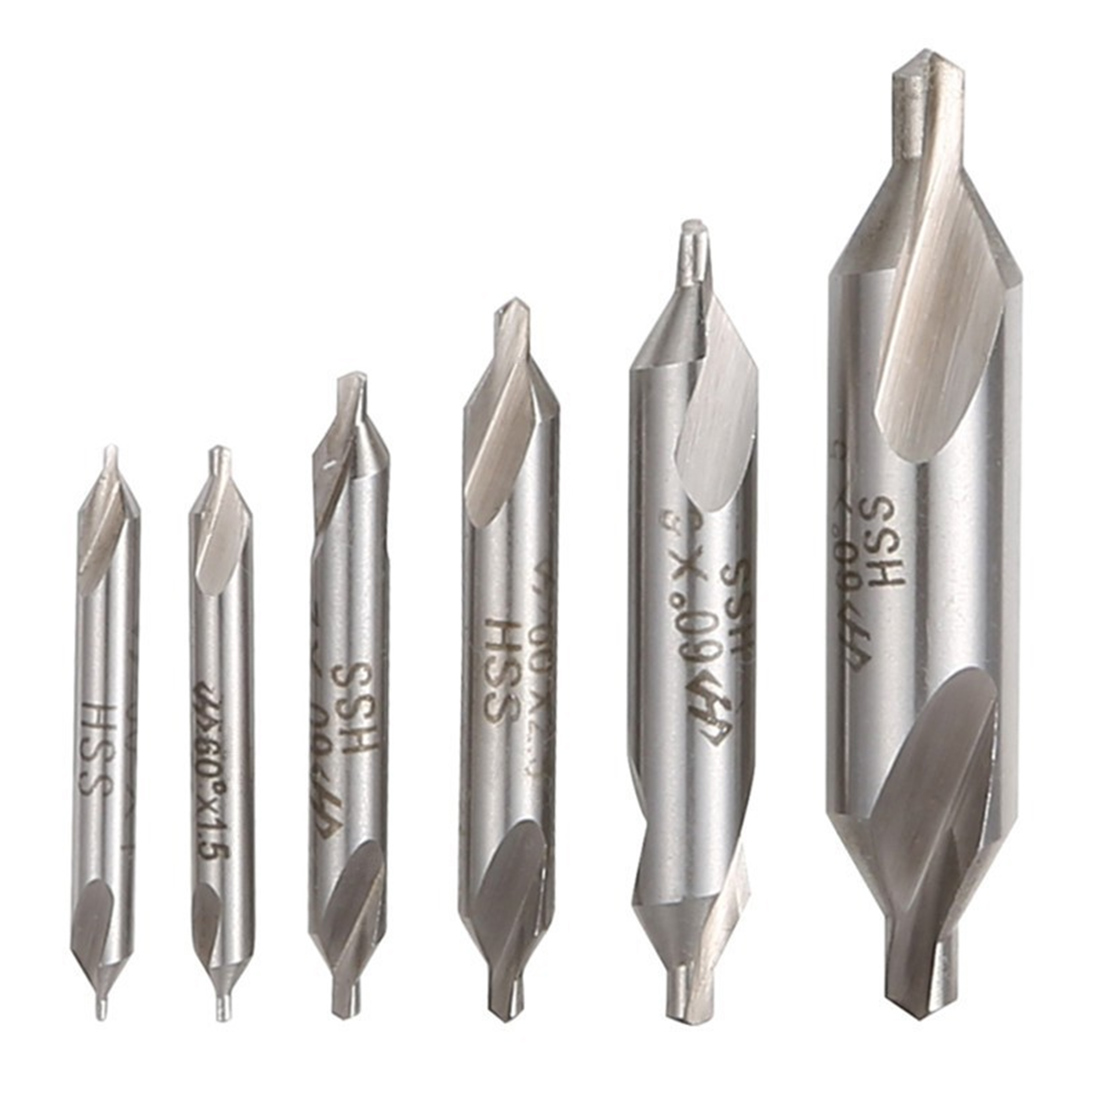 HSS High Speed Steel Center Drill Bits Set Precision Combined Countersinks Kit 60 Degree Angle 1mm 2mm 3mm 5mm For Power Tools